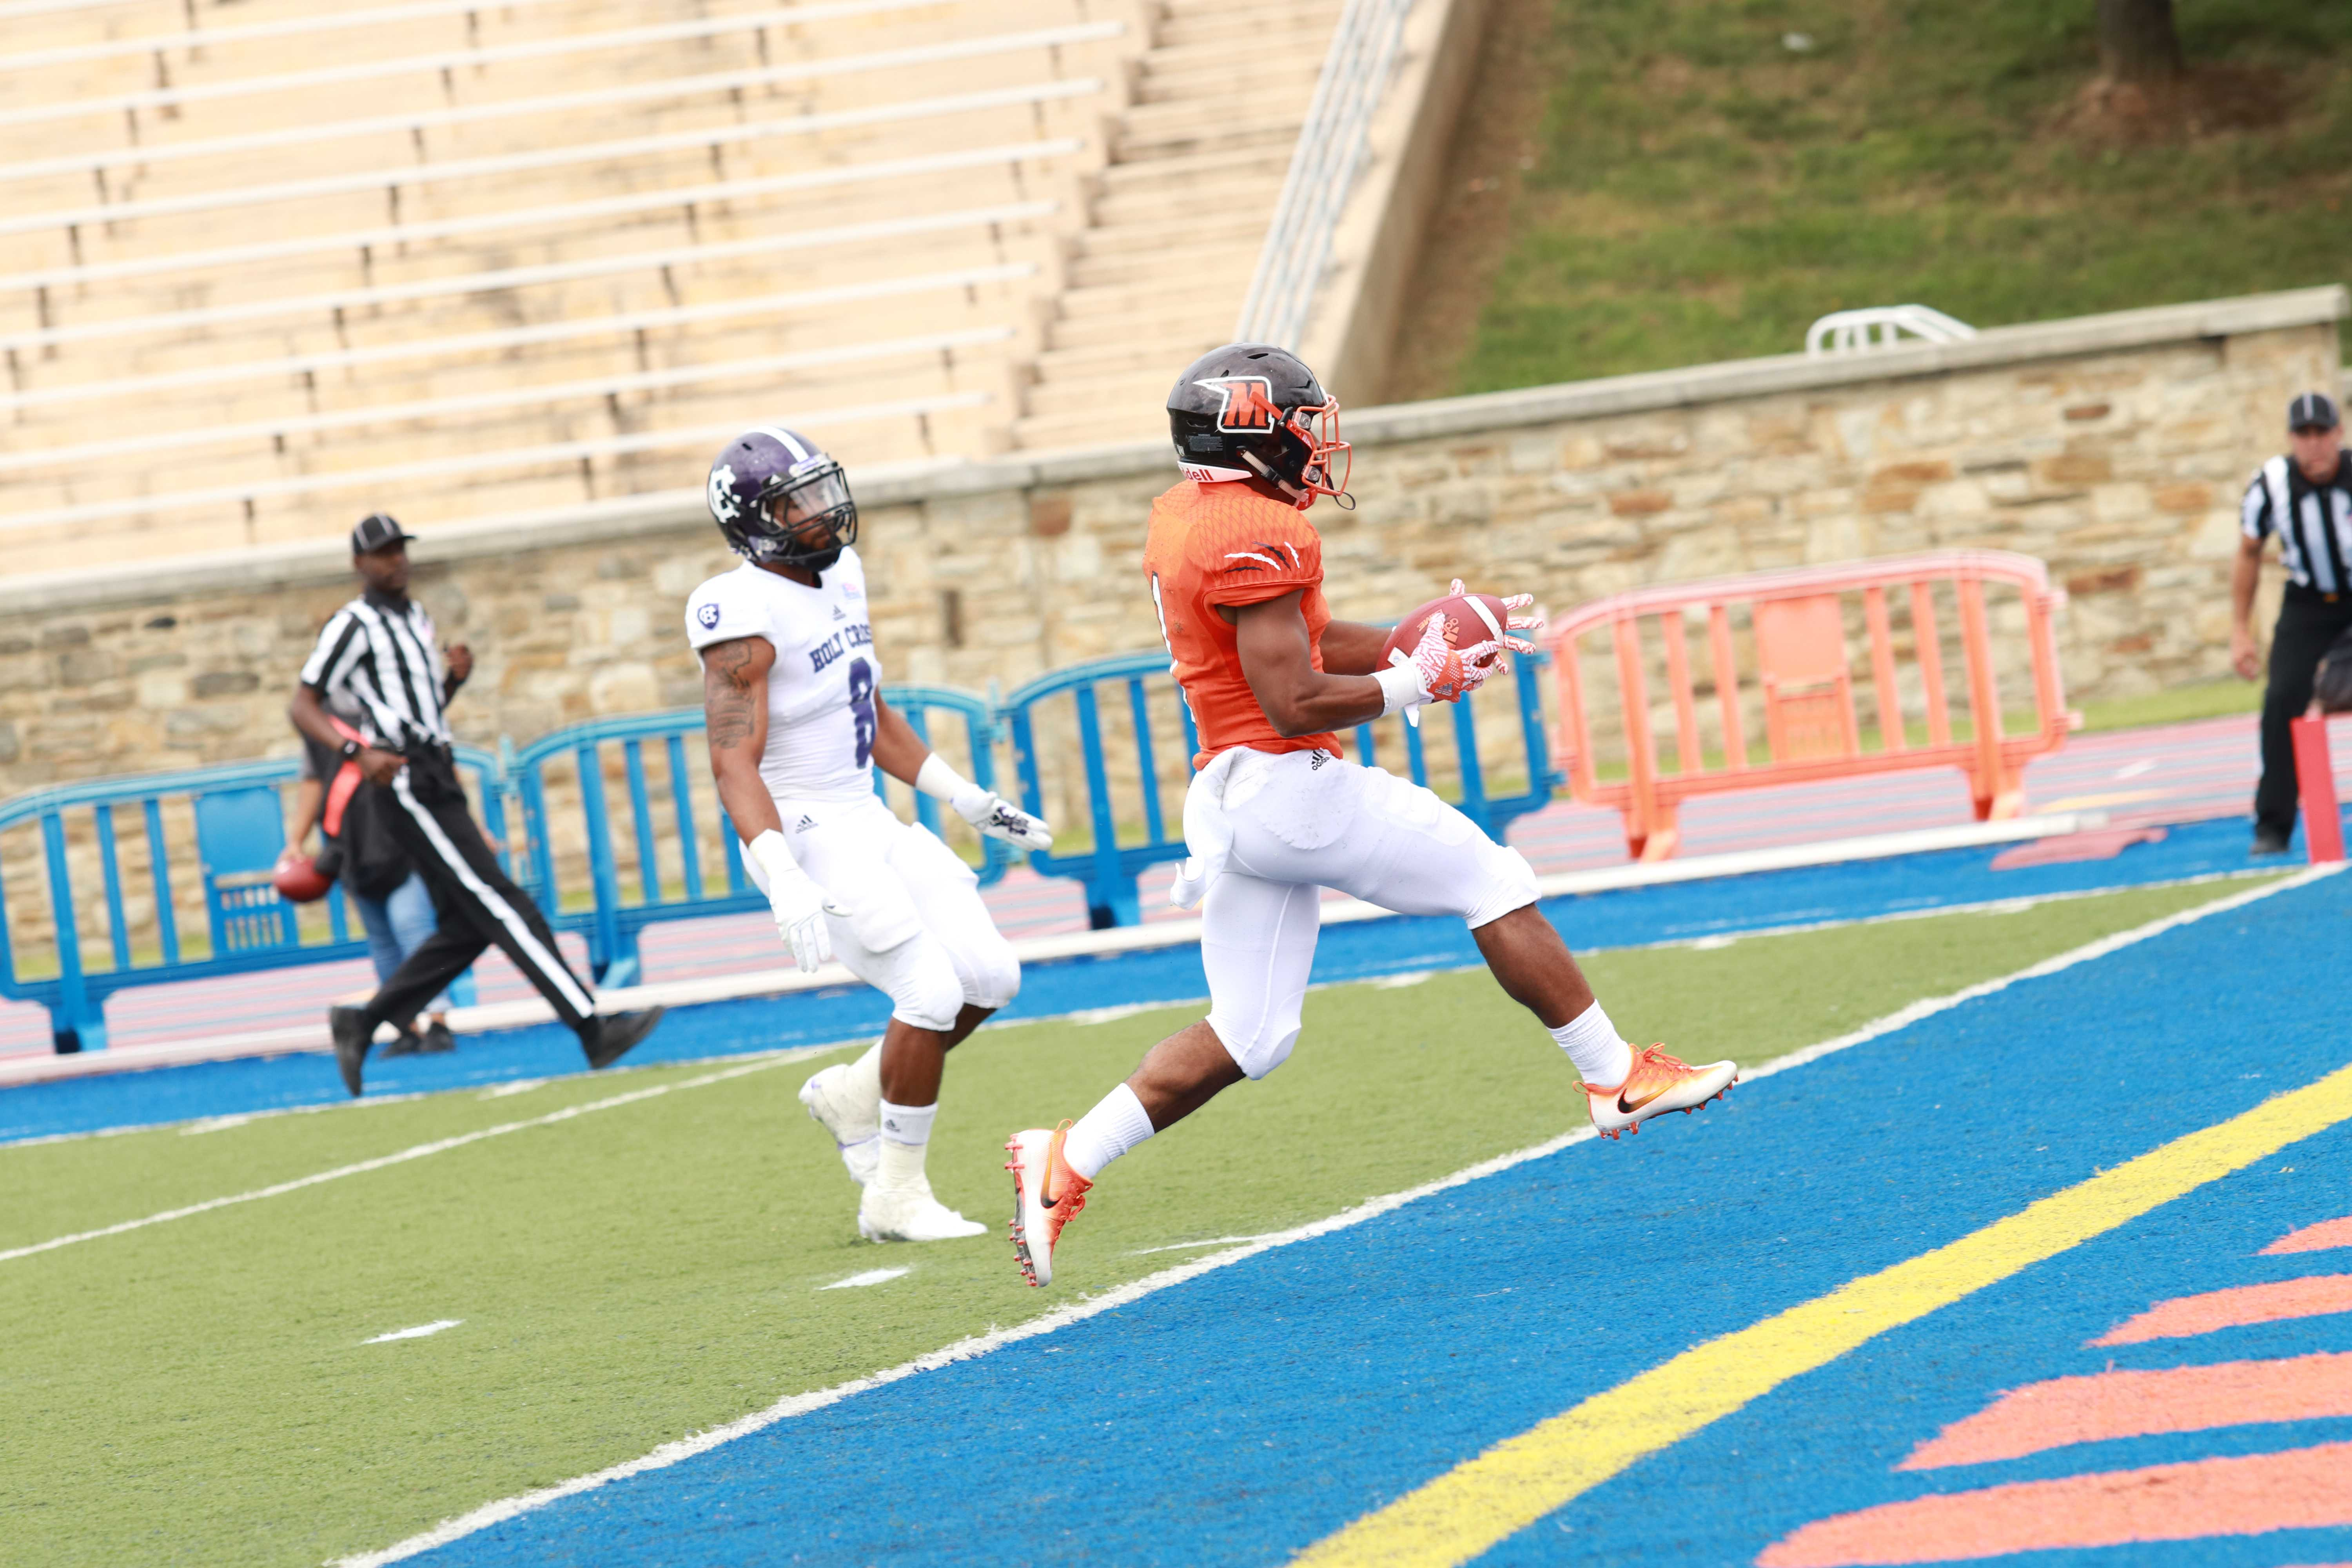 Orlando Johnson runs into the end zone for a first quarter touchdown against Holy Cross. Photo by Terry Wright.